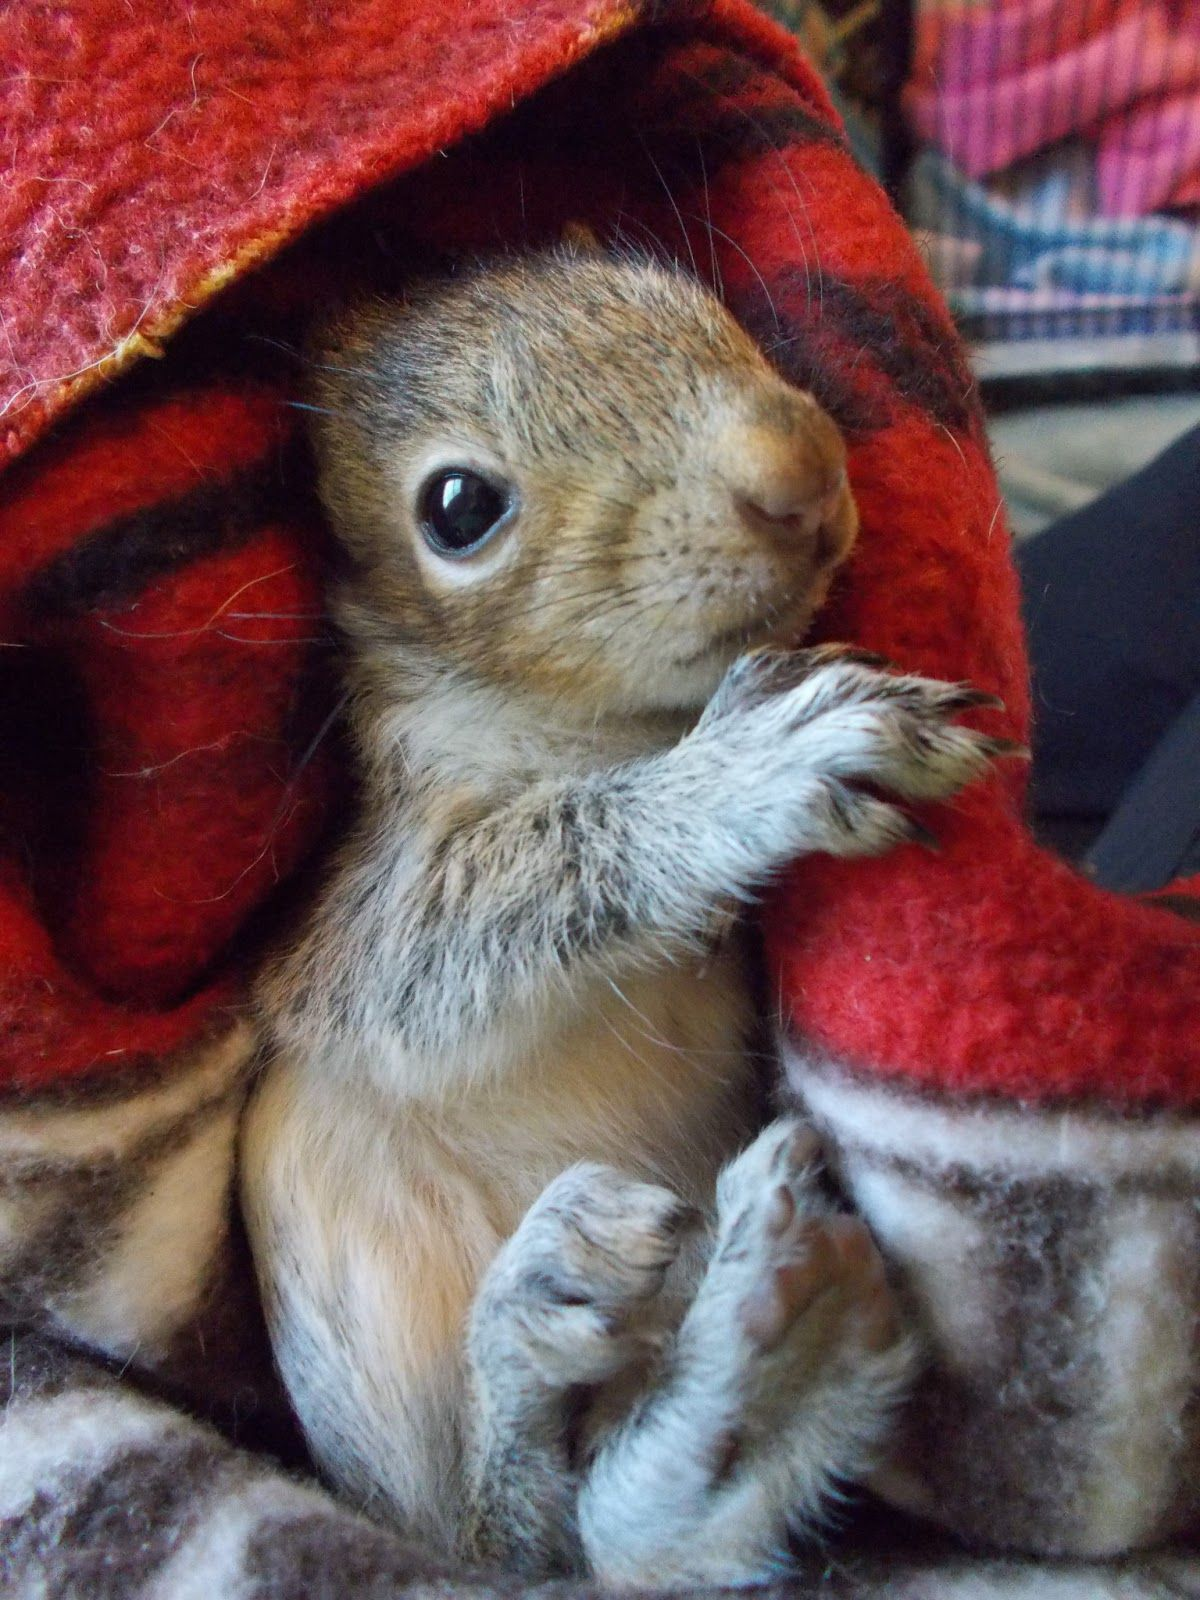 Wrapped in a blanket